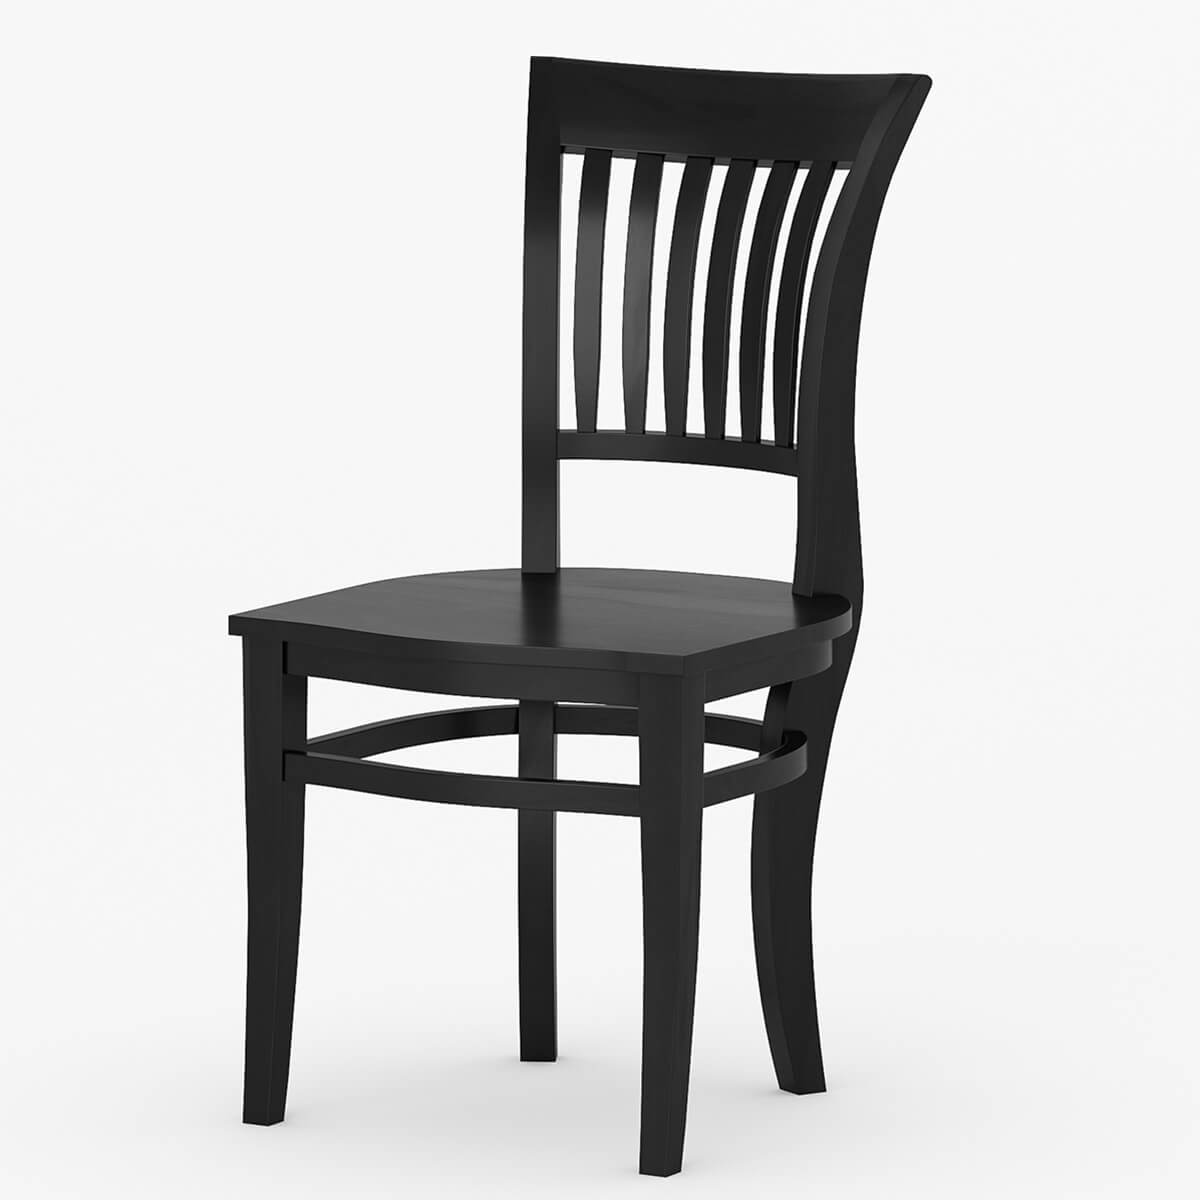 Sierra nevada solid wood kitchen side dining chair furniture - Wooden dining room chairs ...